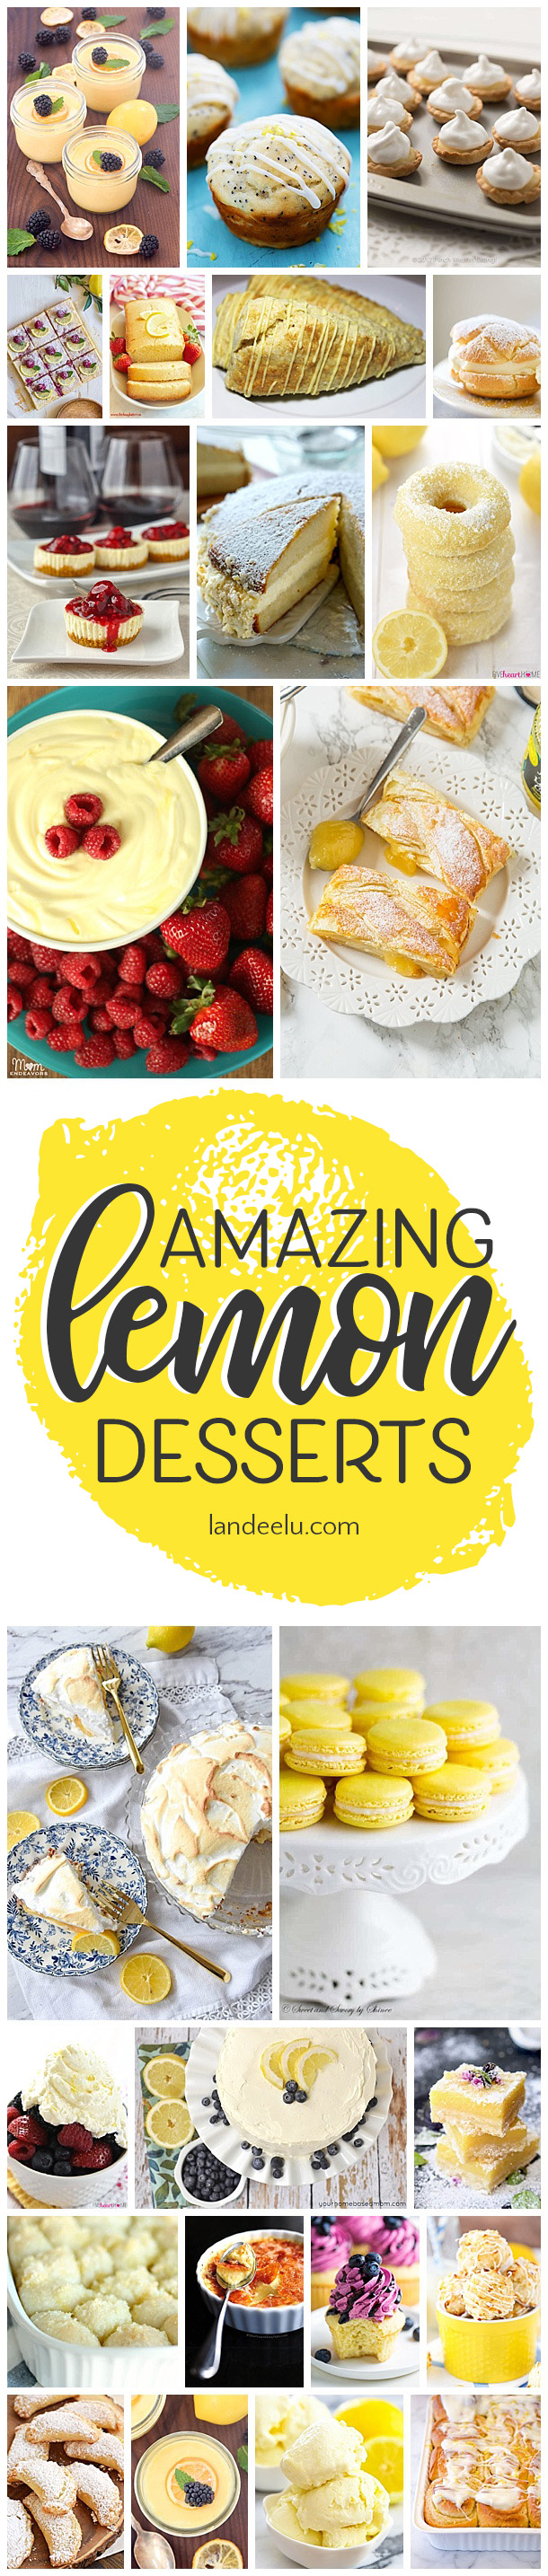 These lemon desserts look so yummy! Can't wait to try the lemon scones! #lemondesserts #lemon #lemonbars #lemoncake